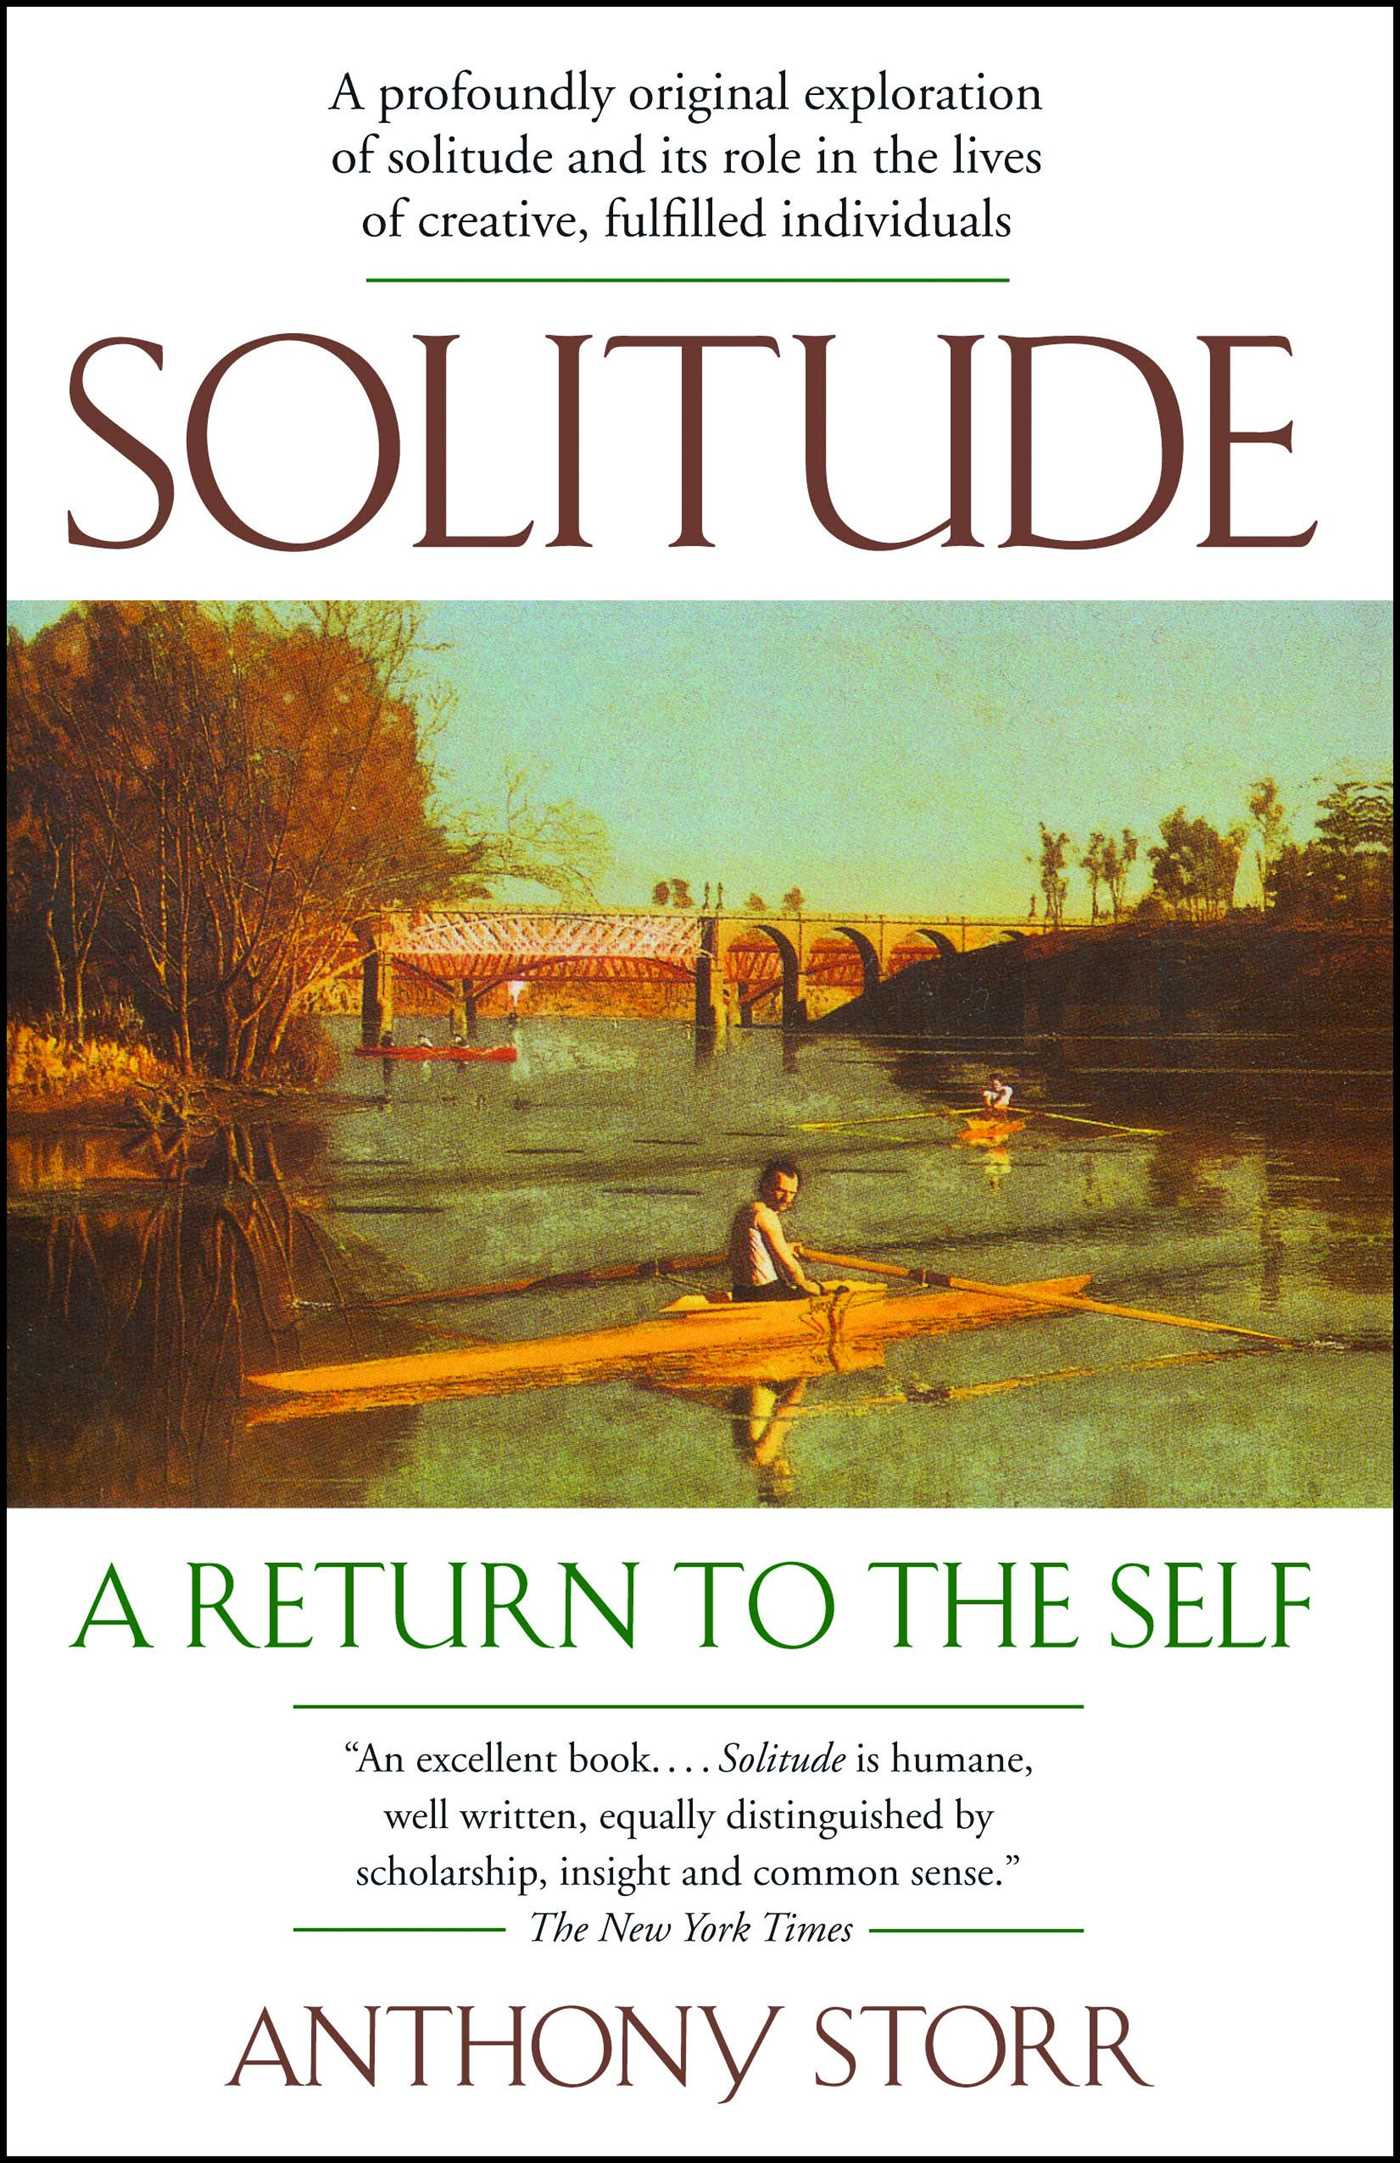 Solitude 9780743280747 hr